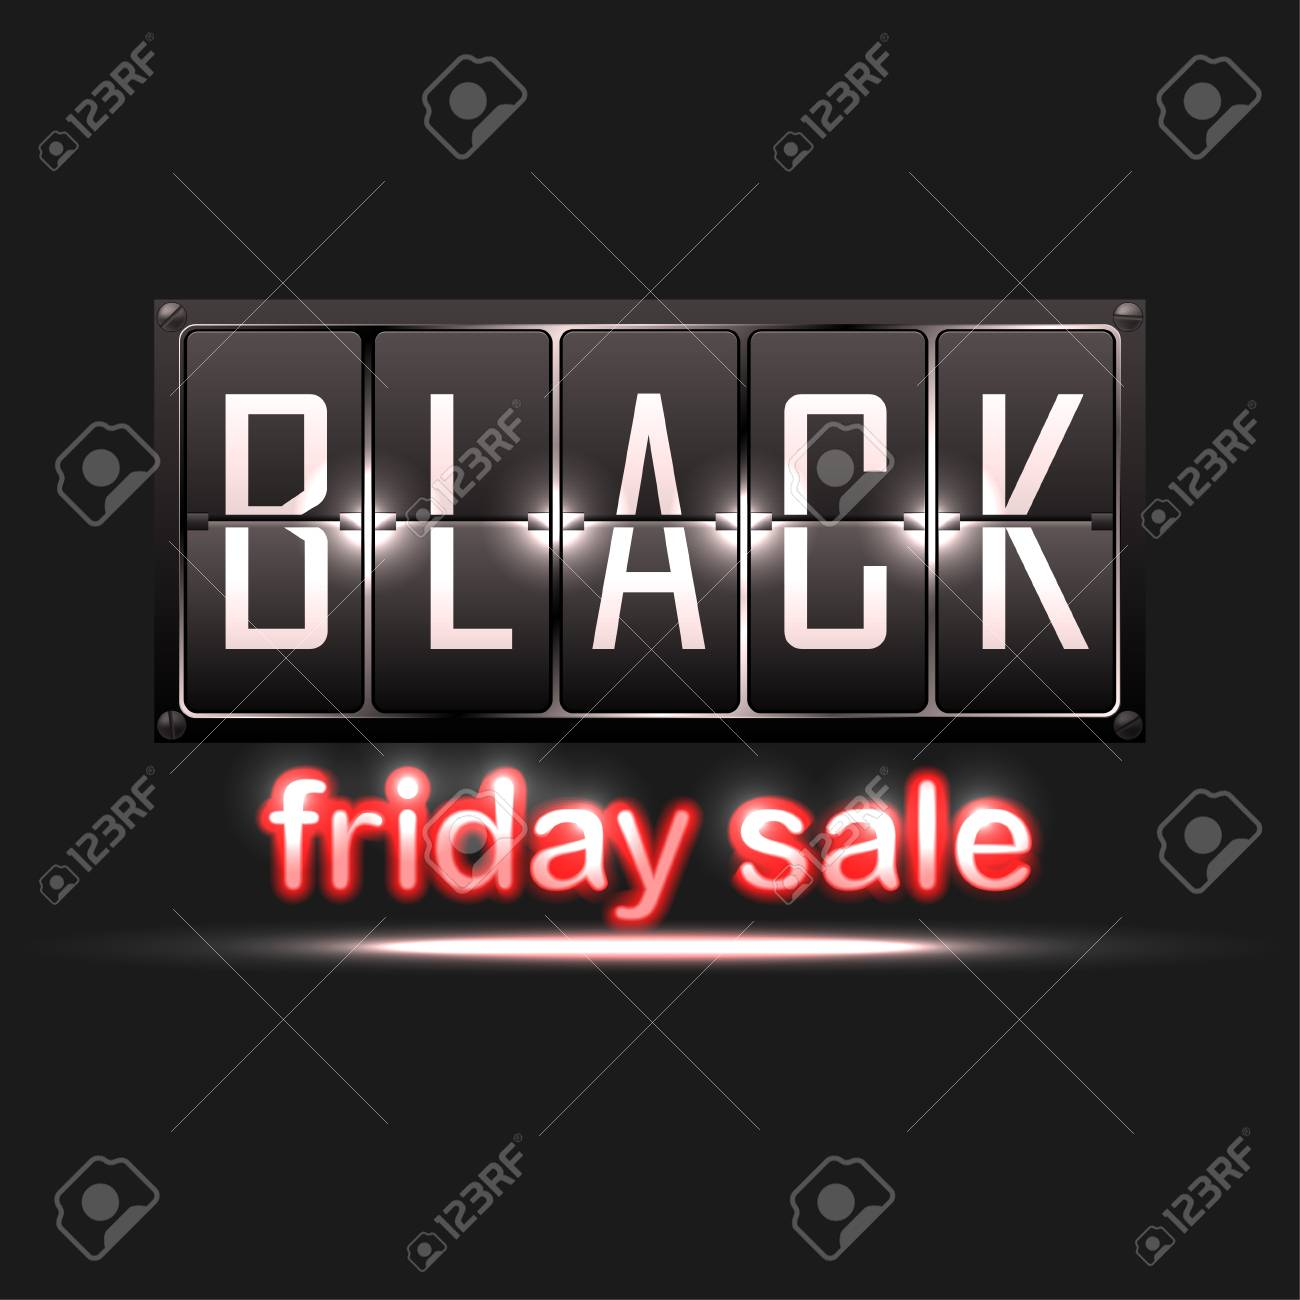 Black Friday Sale Sale Banner With Red Neon Text On White Background Royalty Free Cliparts Vectors And Stock Illustration Image 127594032